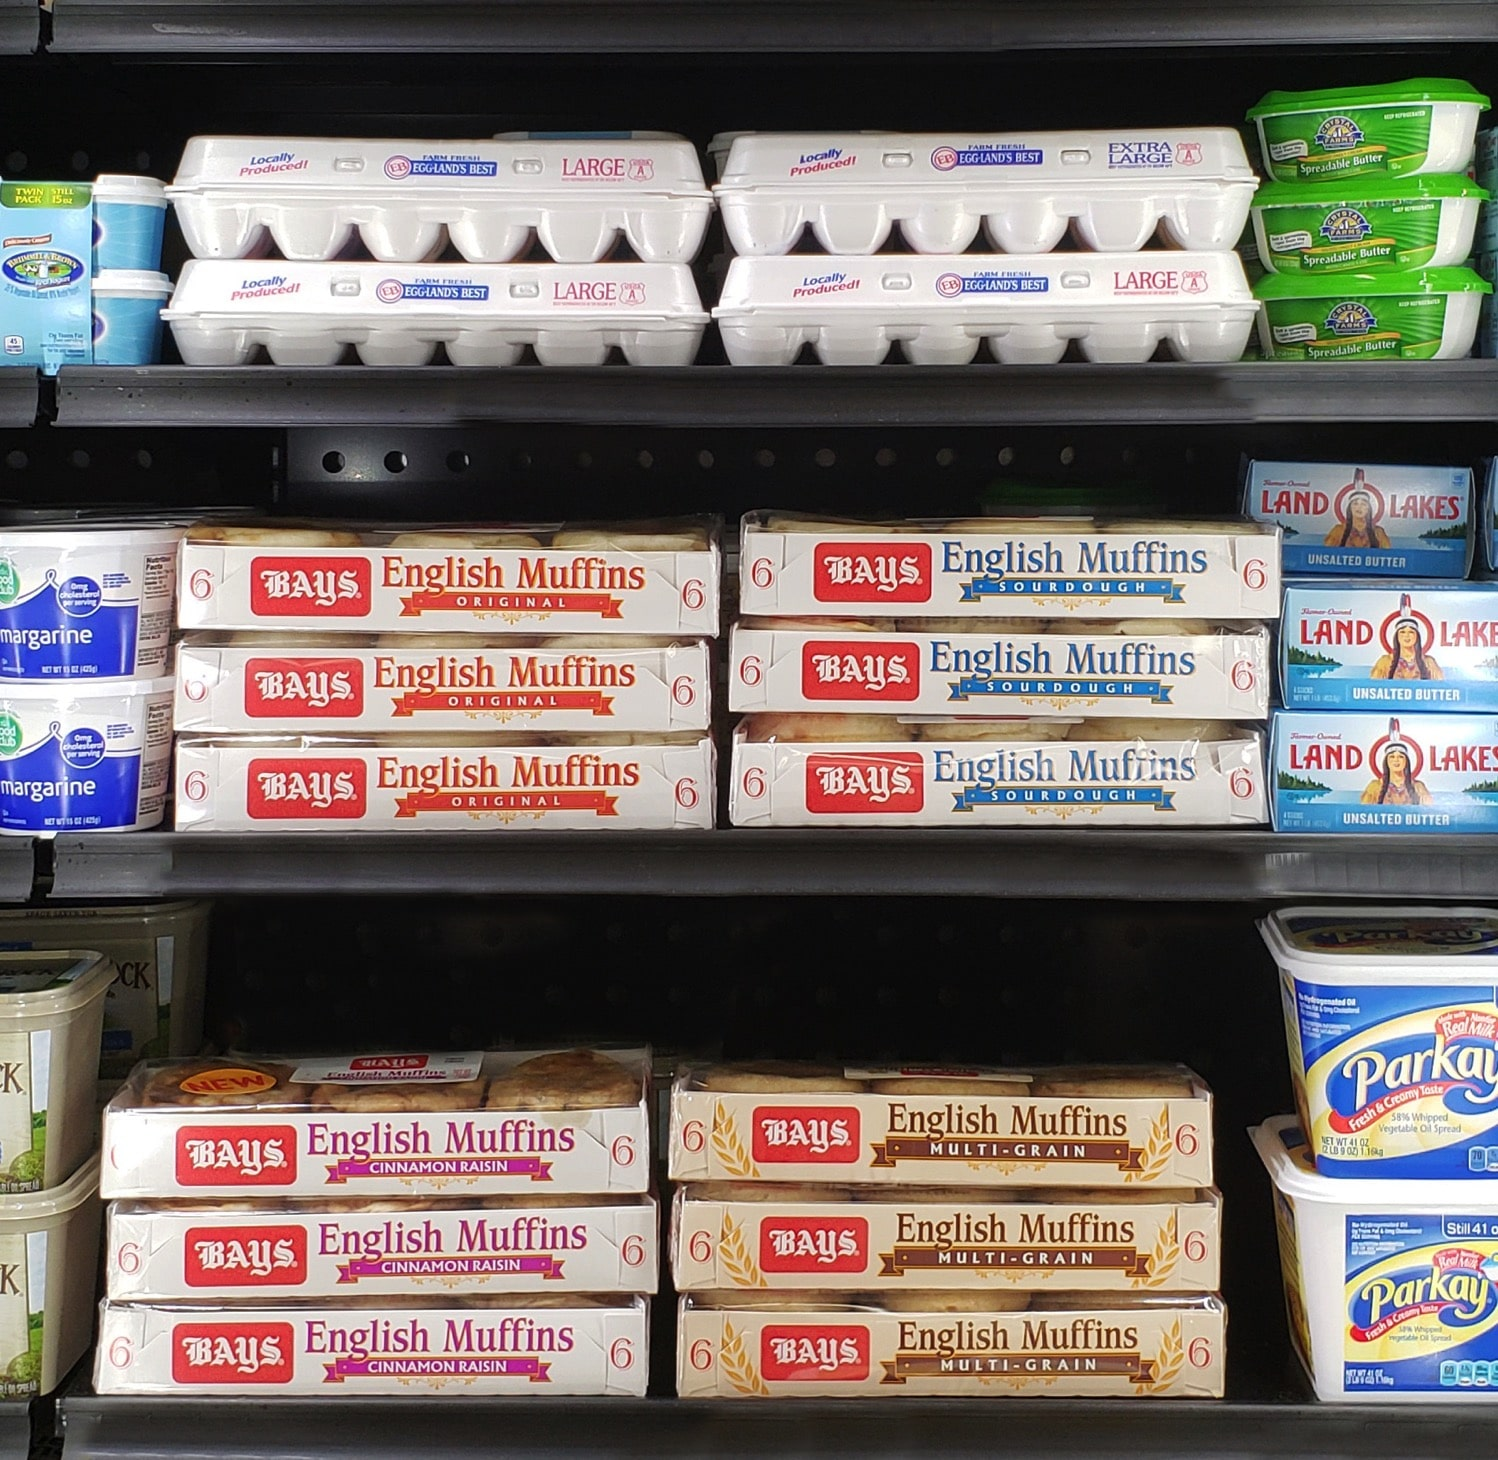 Bays English Muffins on Shelf in Dairy Section .jpg